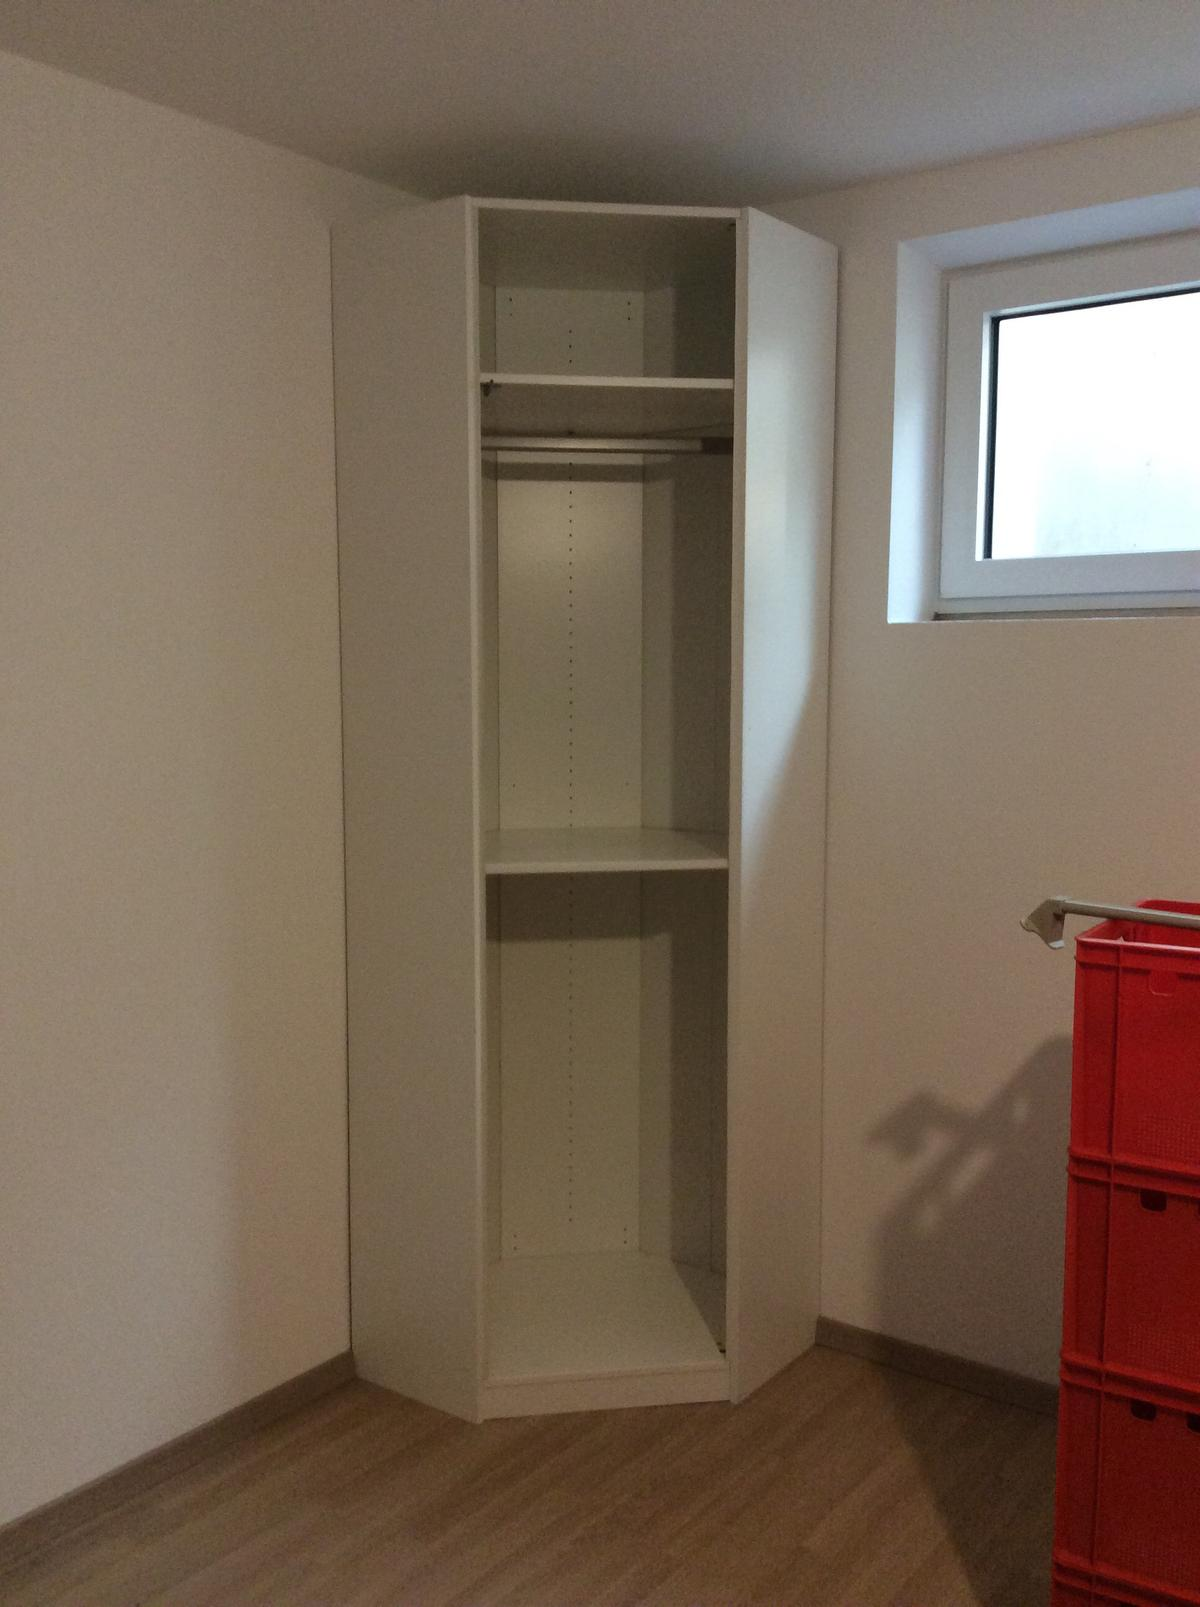 Pax Schrank Eckelement 236 Cm Weiss In 6341 Ebbs For 40 00 For